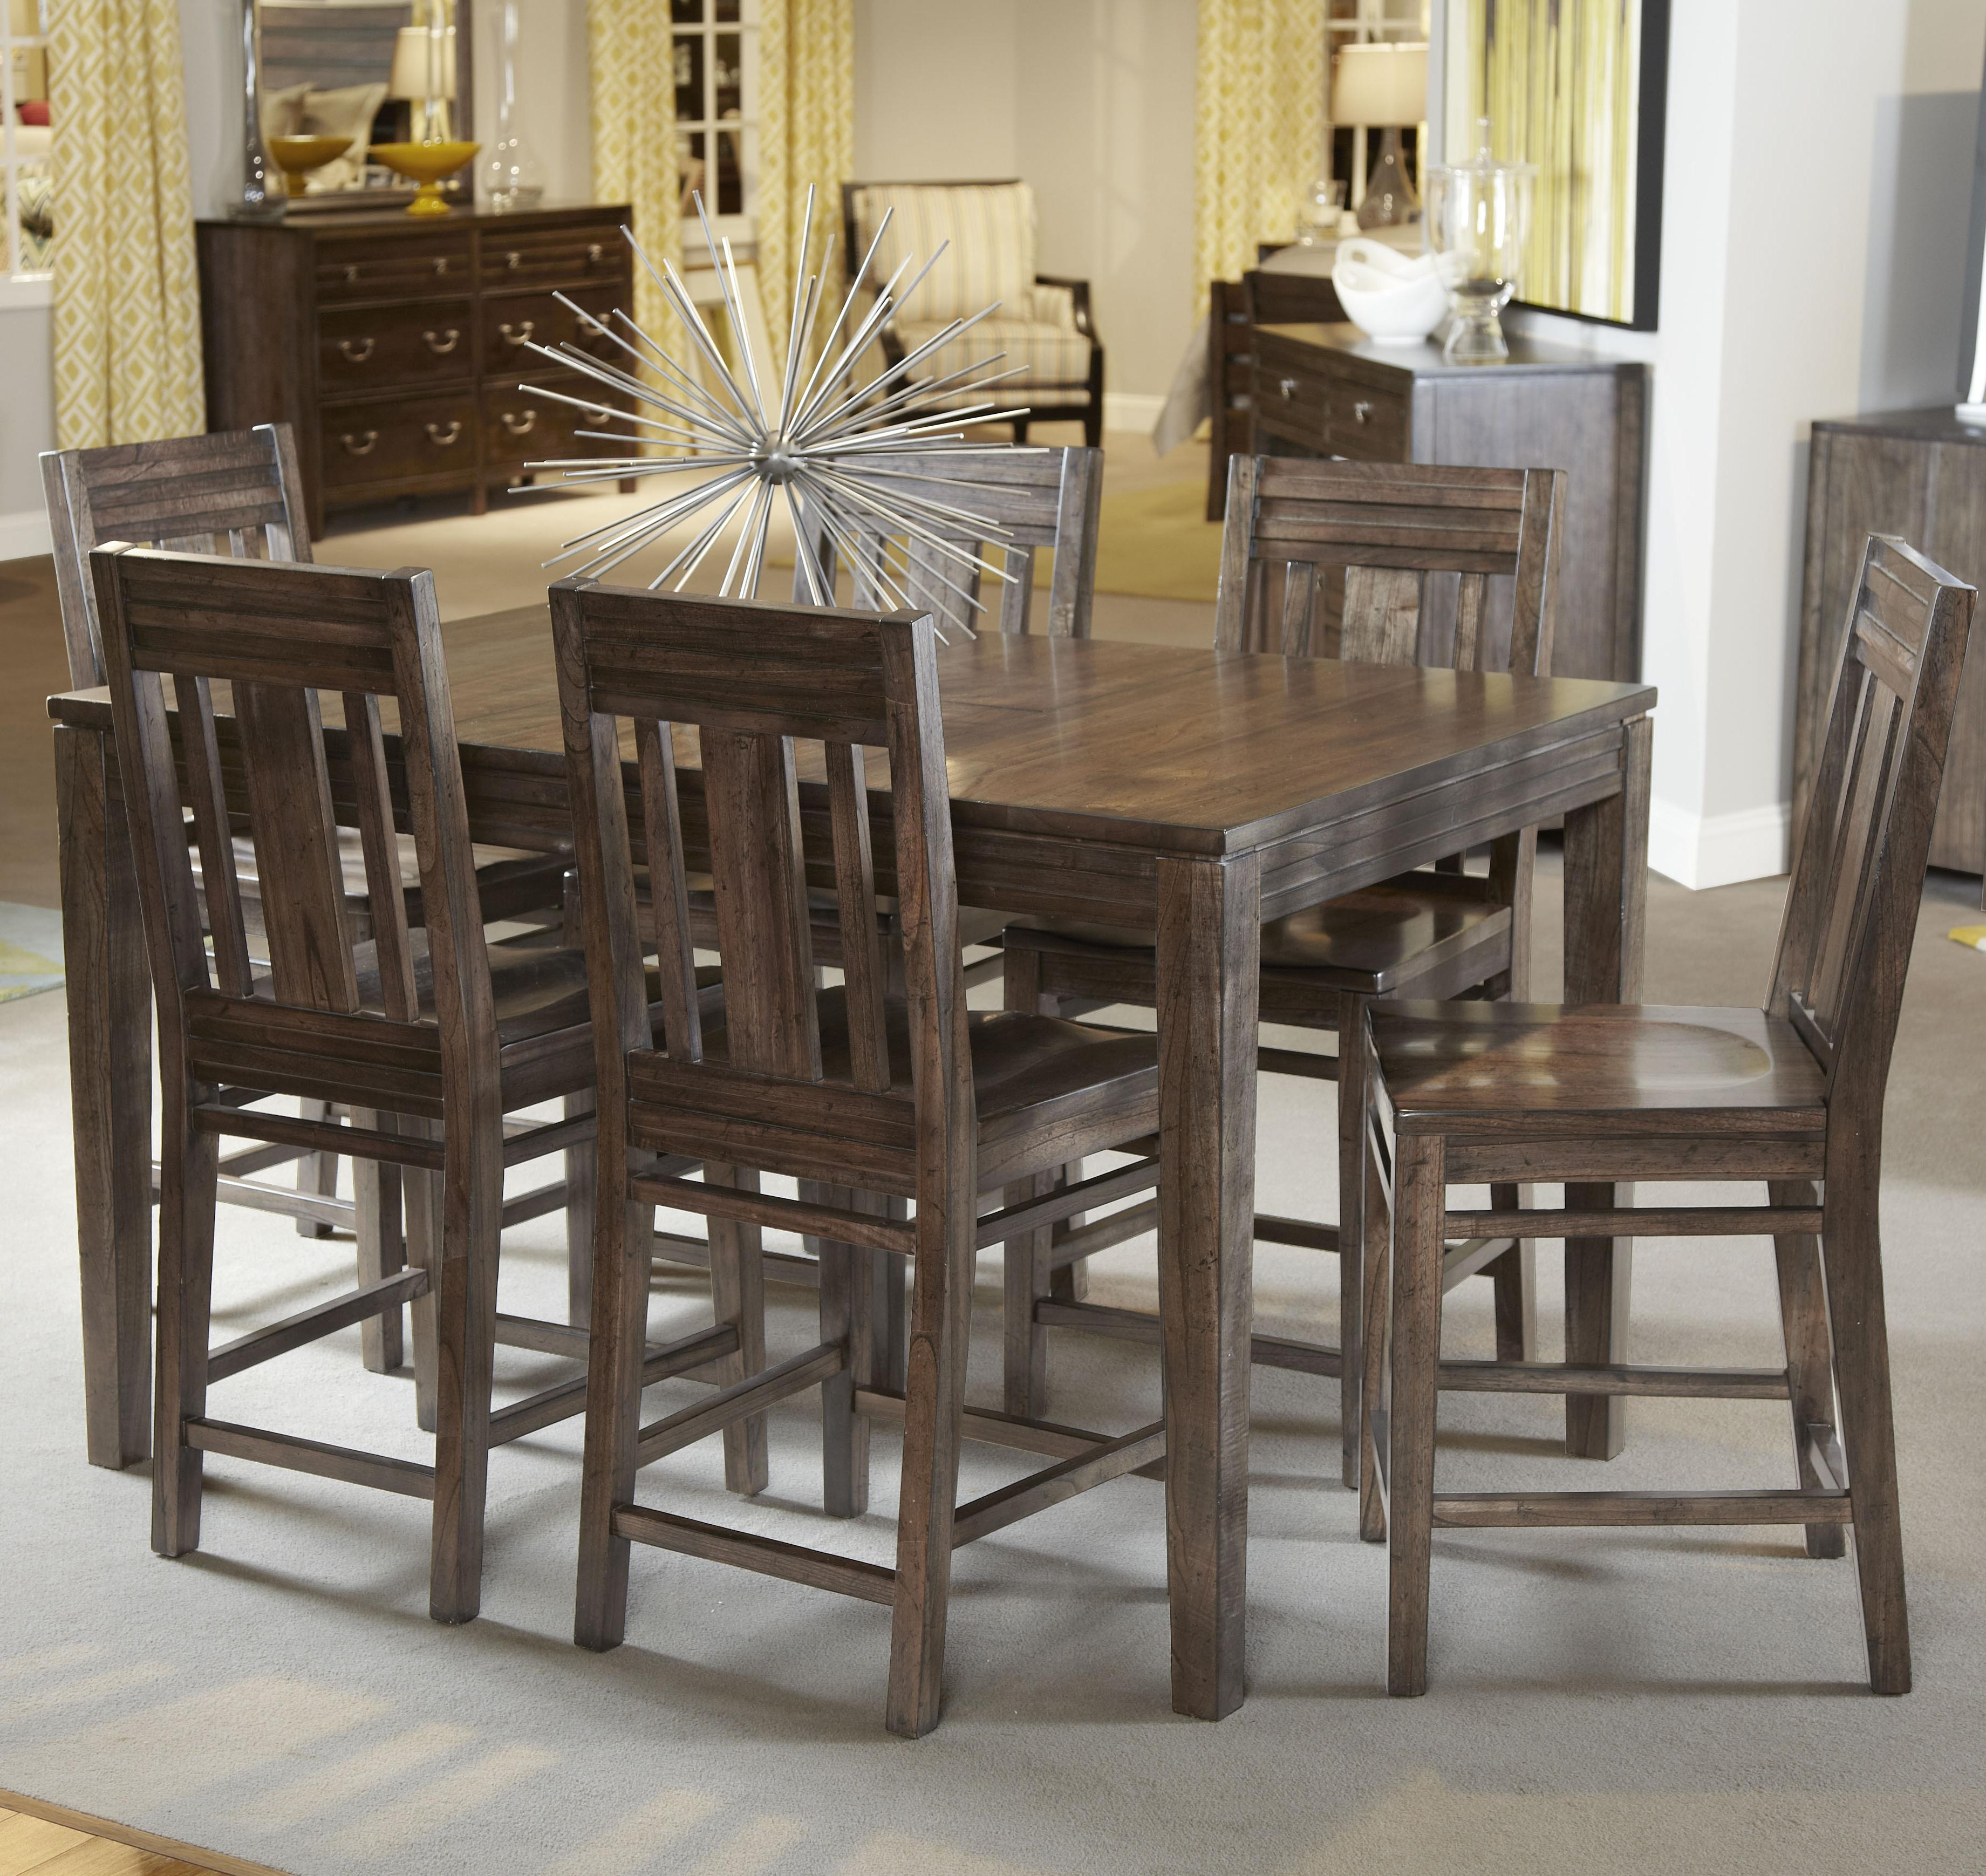 7 Piece Counter Height Dining Set Probrains inside Awesome 7 Piece Counter Height Dining Set With Leaf you should have